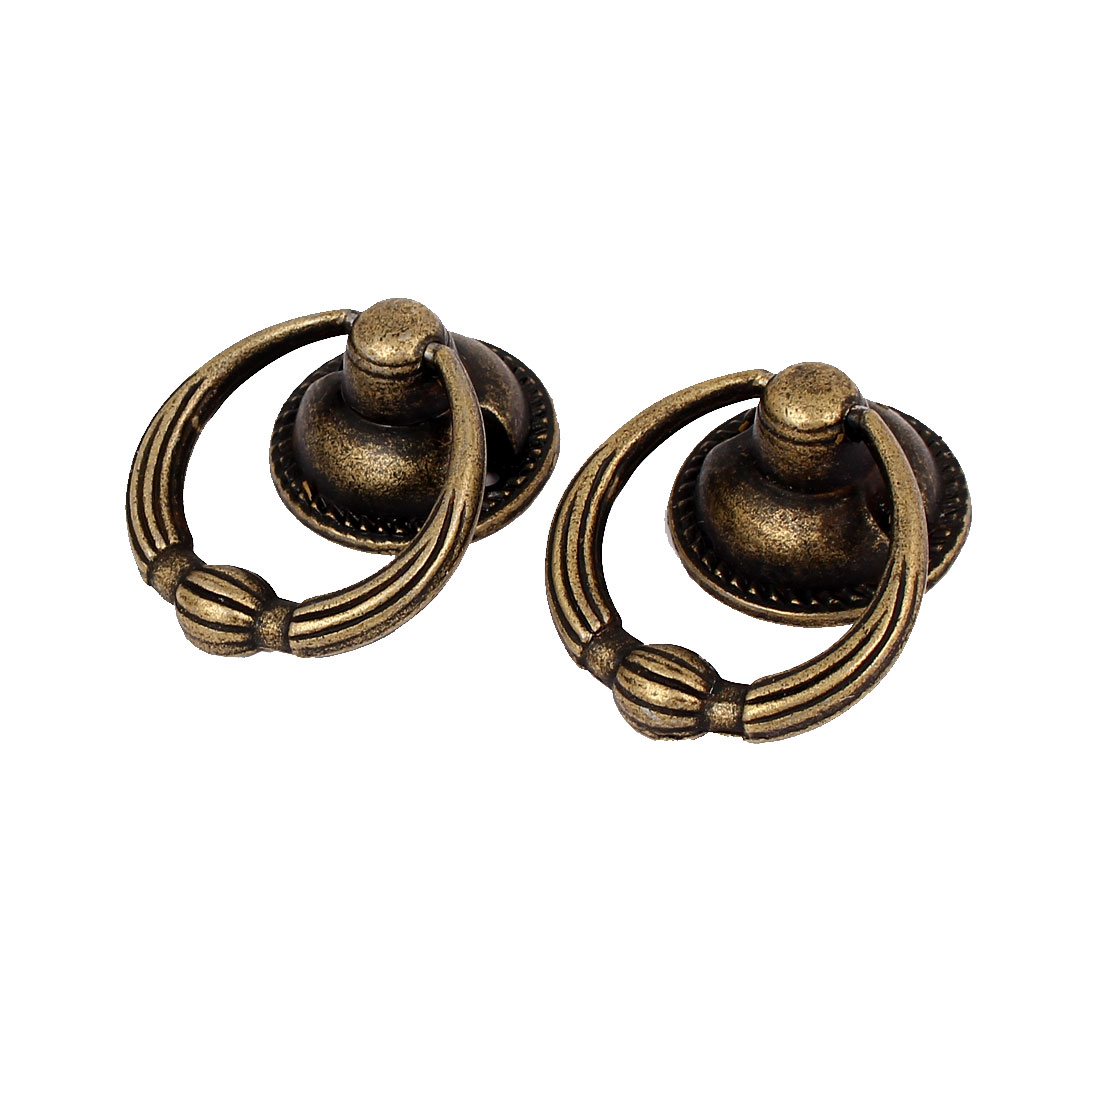 30mm Ring Dia Zinc Alloy Retro Style Round Base Pull Handle Bronze Tone 2pcs